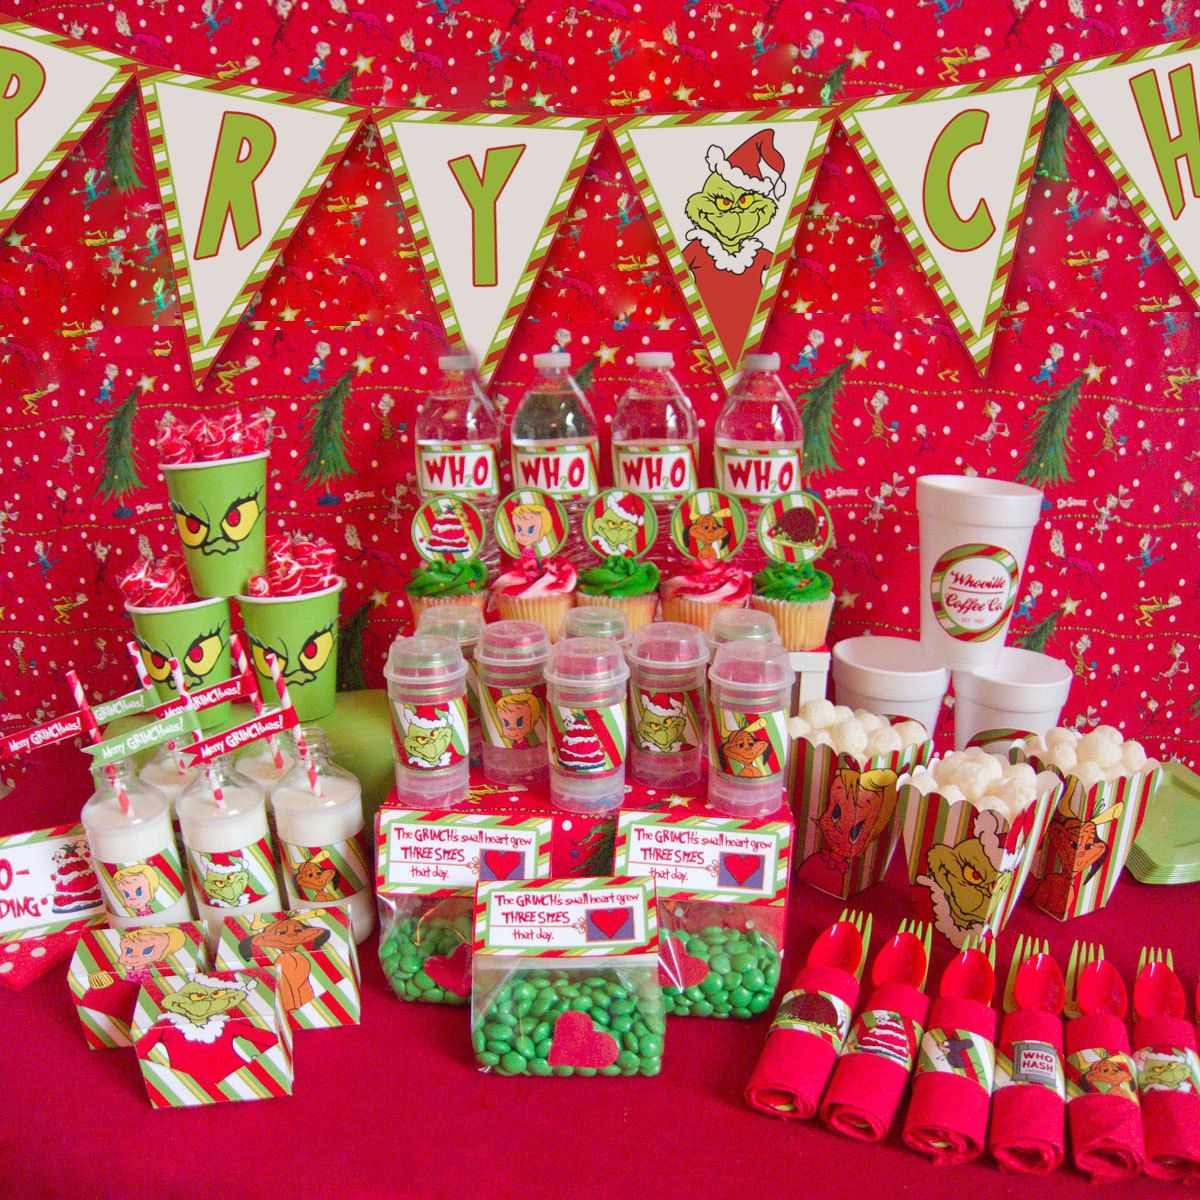 Christmas dessert table decoration ideas - How The Grinch Stole Christmas Party Printables By Chicaandjo